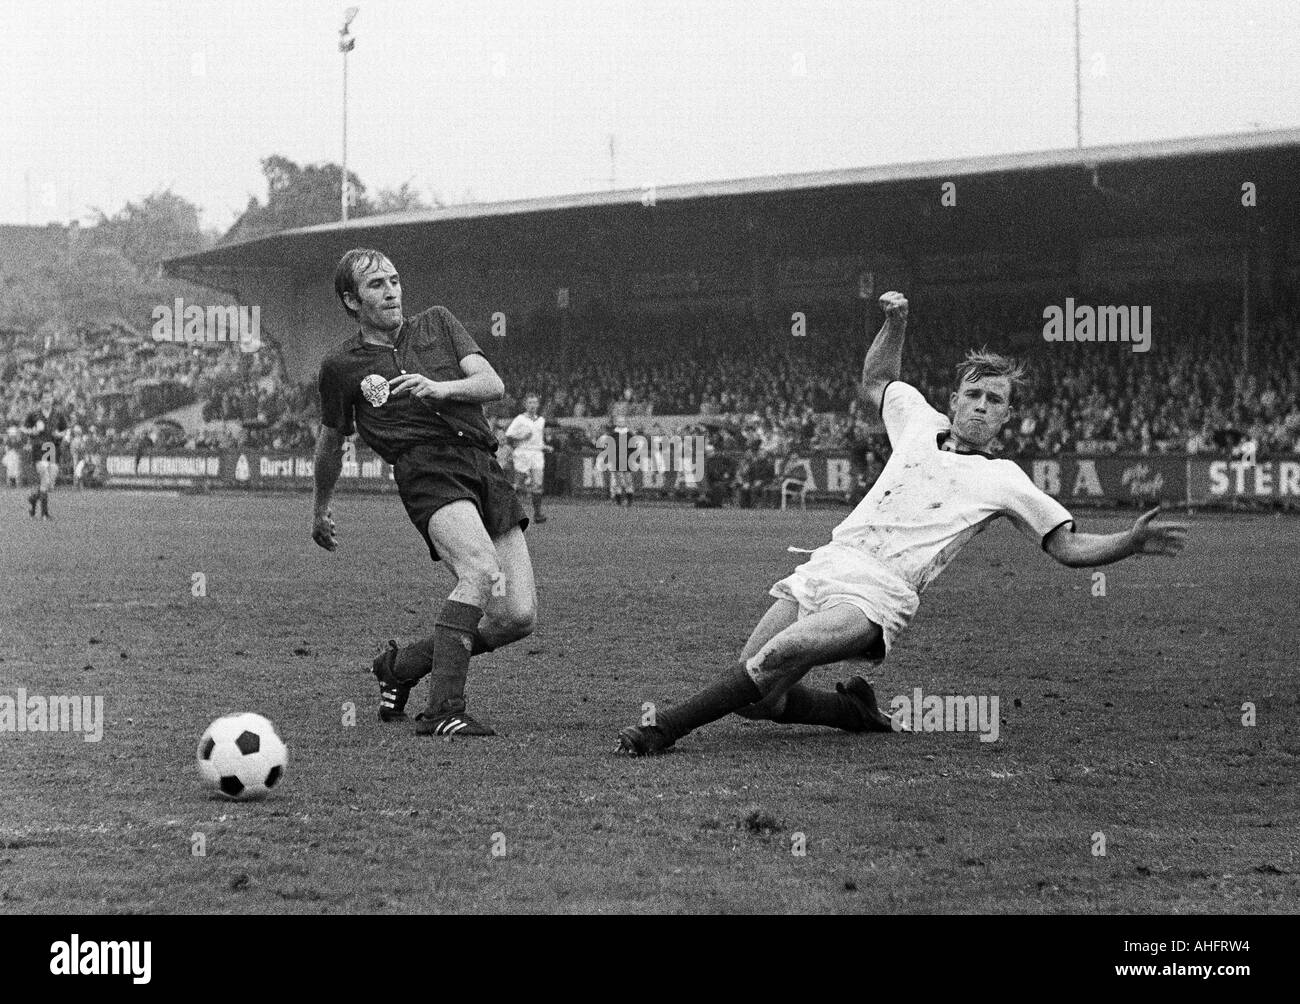 football, Regionalliga West, 1967/1968, ETB Schwarz-Weiss Essen versus Bayer Leverkusen 3:3, Stadium am Uhlenkrug in Essen, scene of the match, duel between Helmut Richert (Bayer) left and Herbert Stoffmehl (ETB) - Stock Image